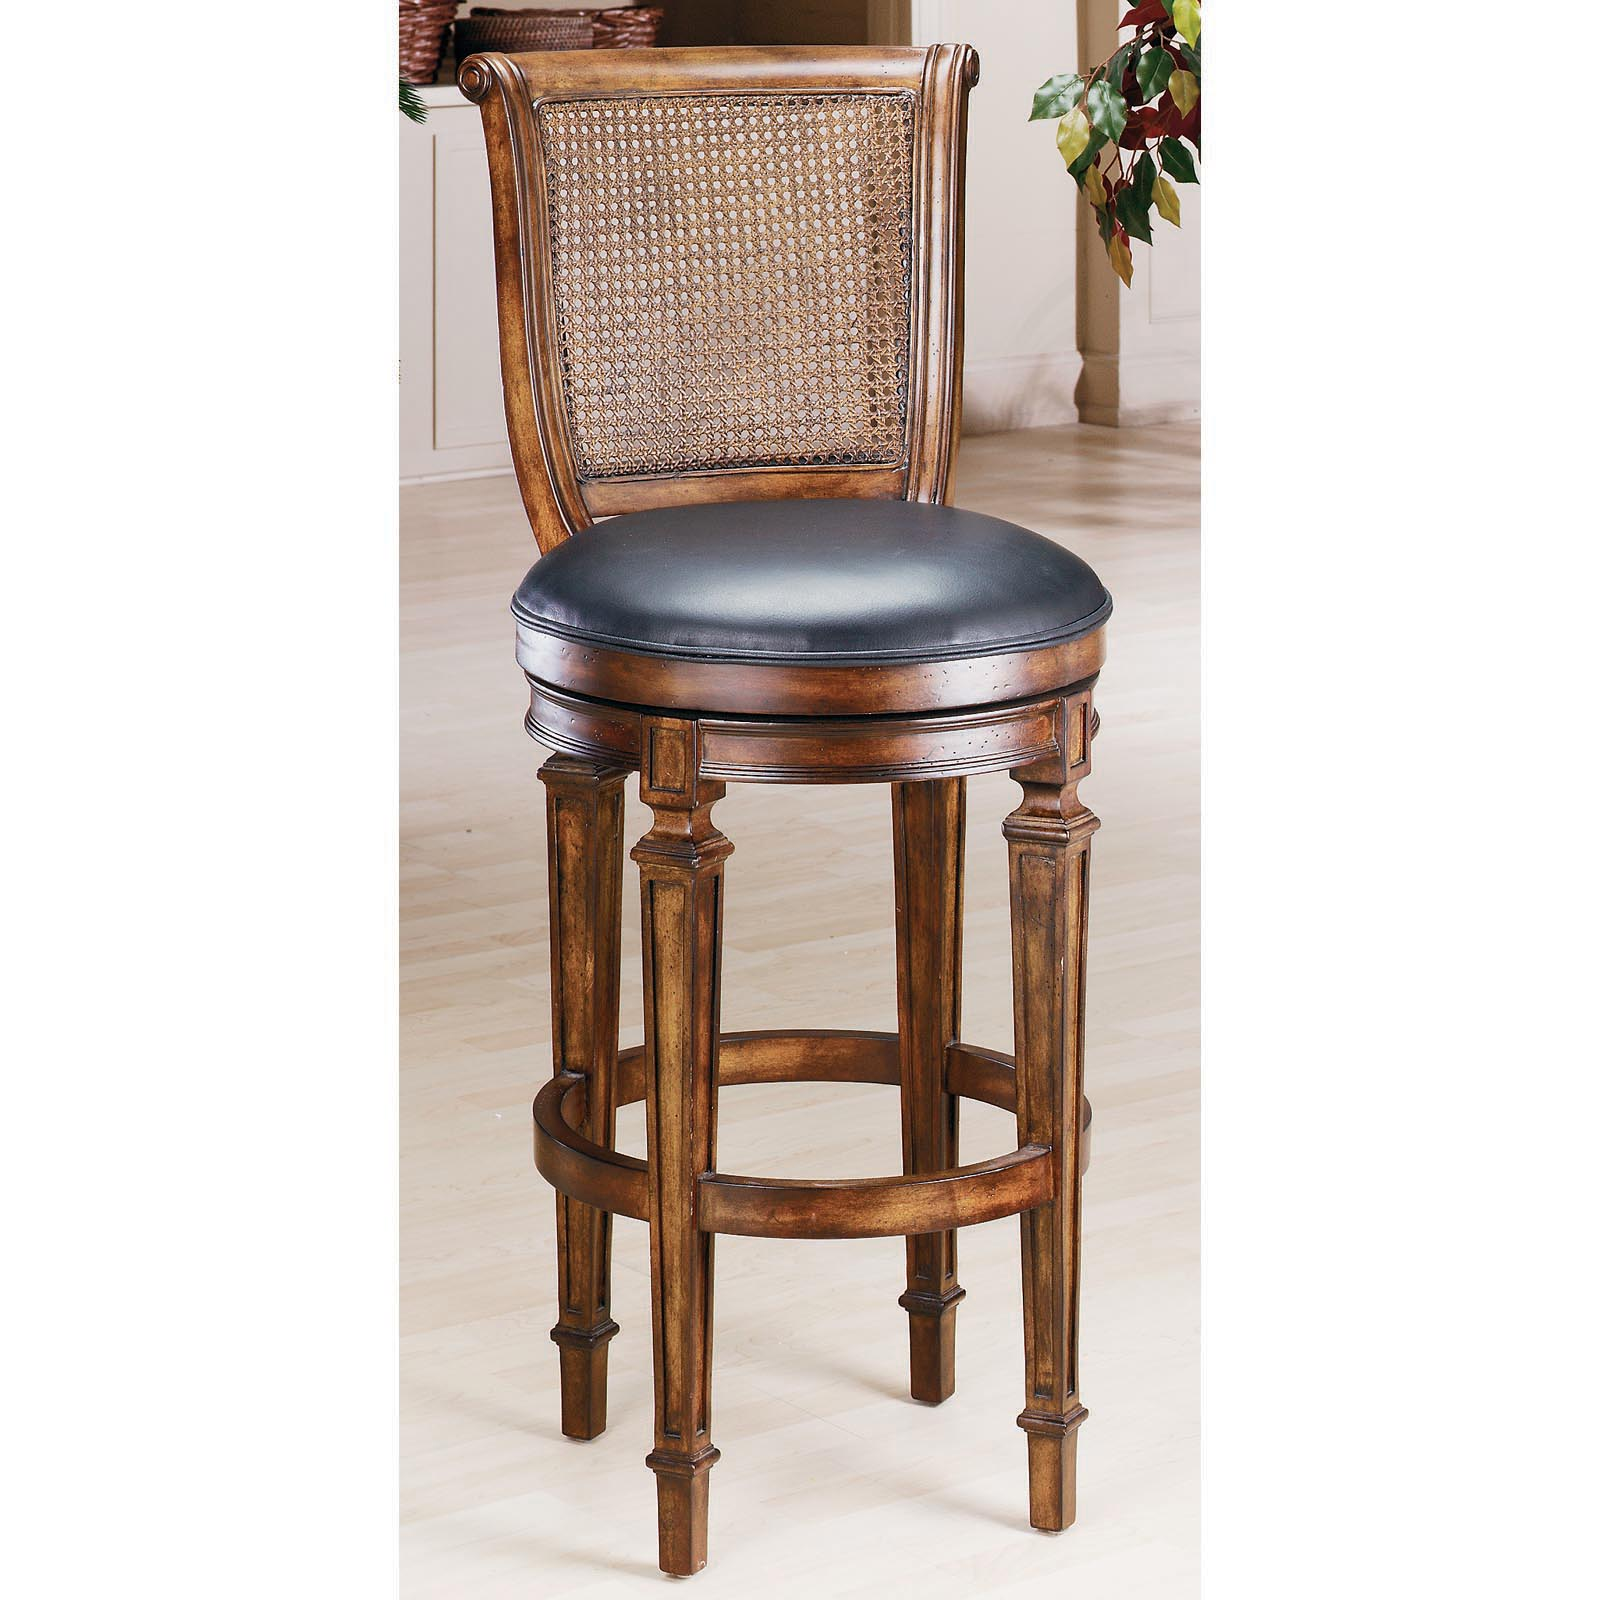 Cane Back Swivel Counter Stool | Hayneedle  sc 1 st  Hayneedle : wood counter stools with backs - islam-shia.org